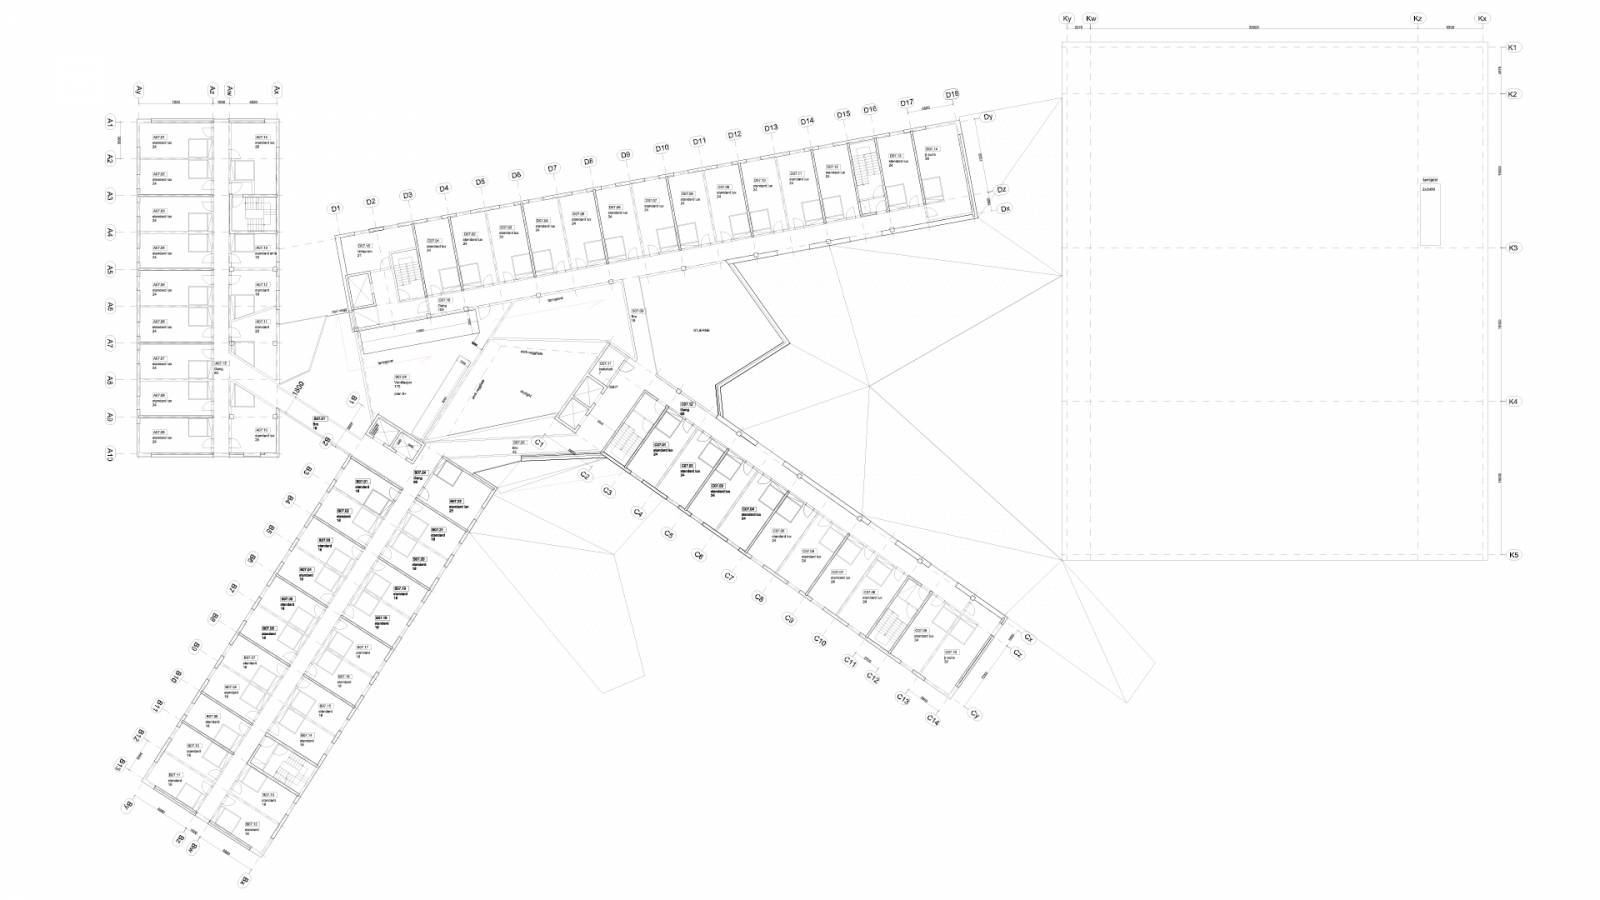 ROOM LAYOUT - Clarion Hotel & Congress - SPOL Architects